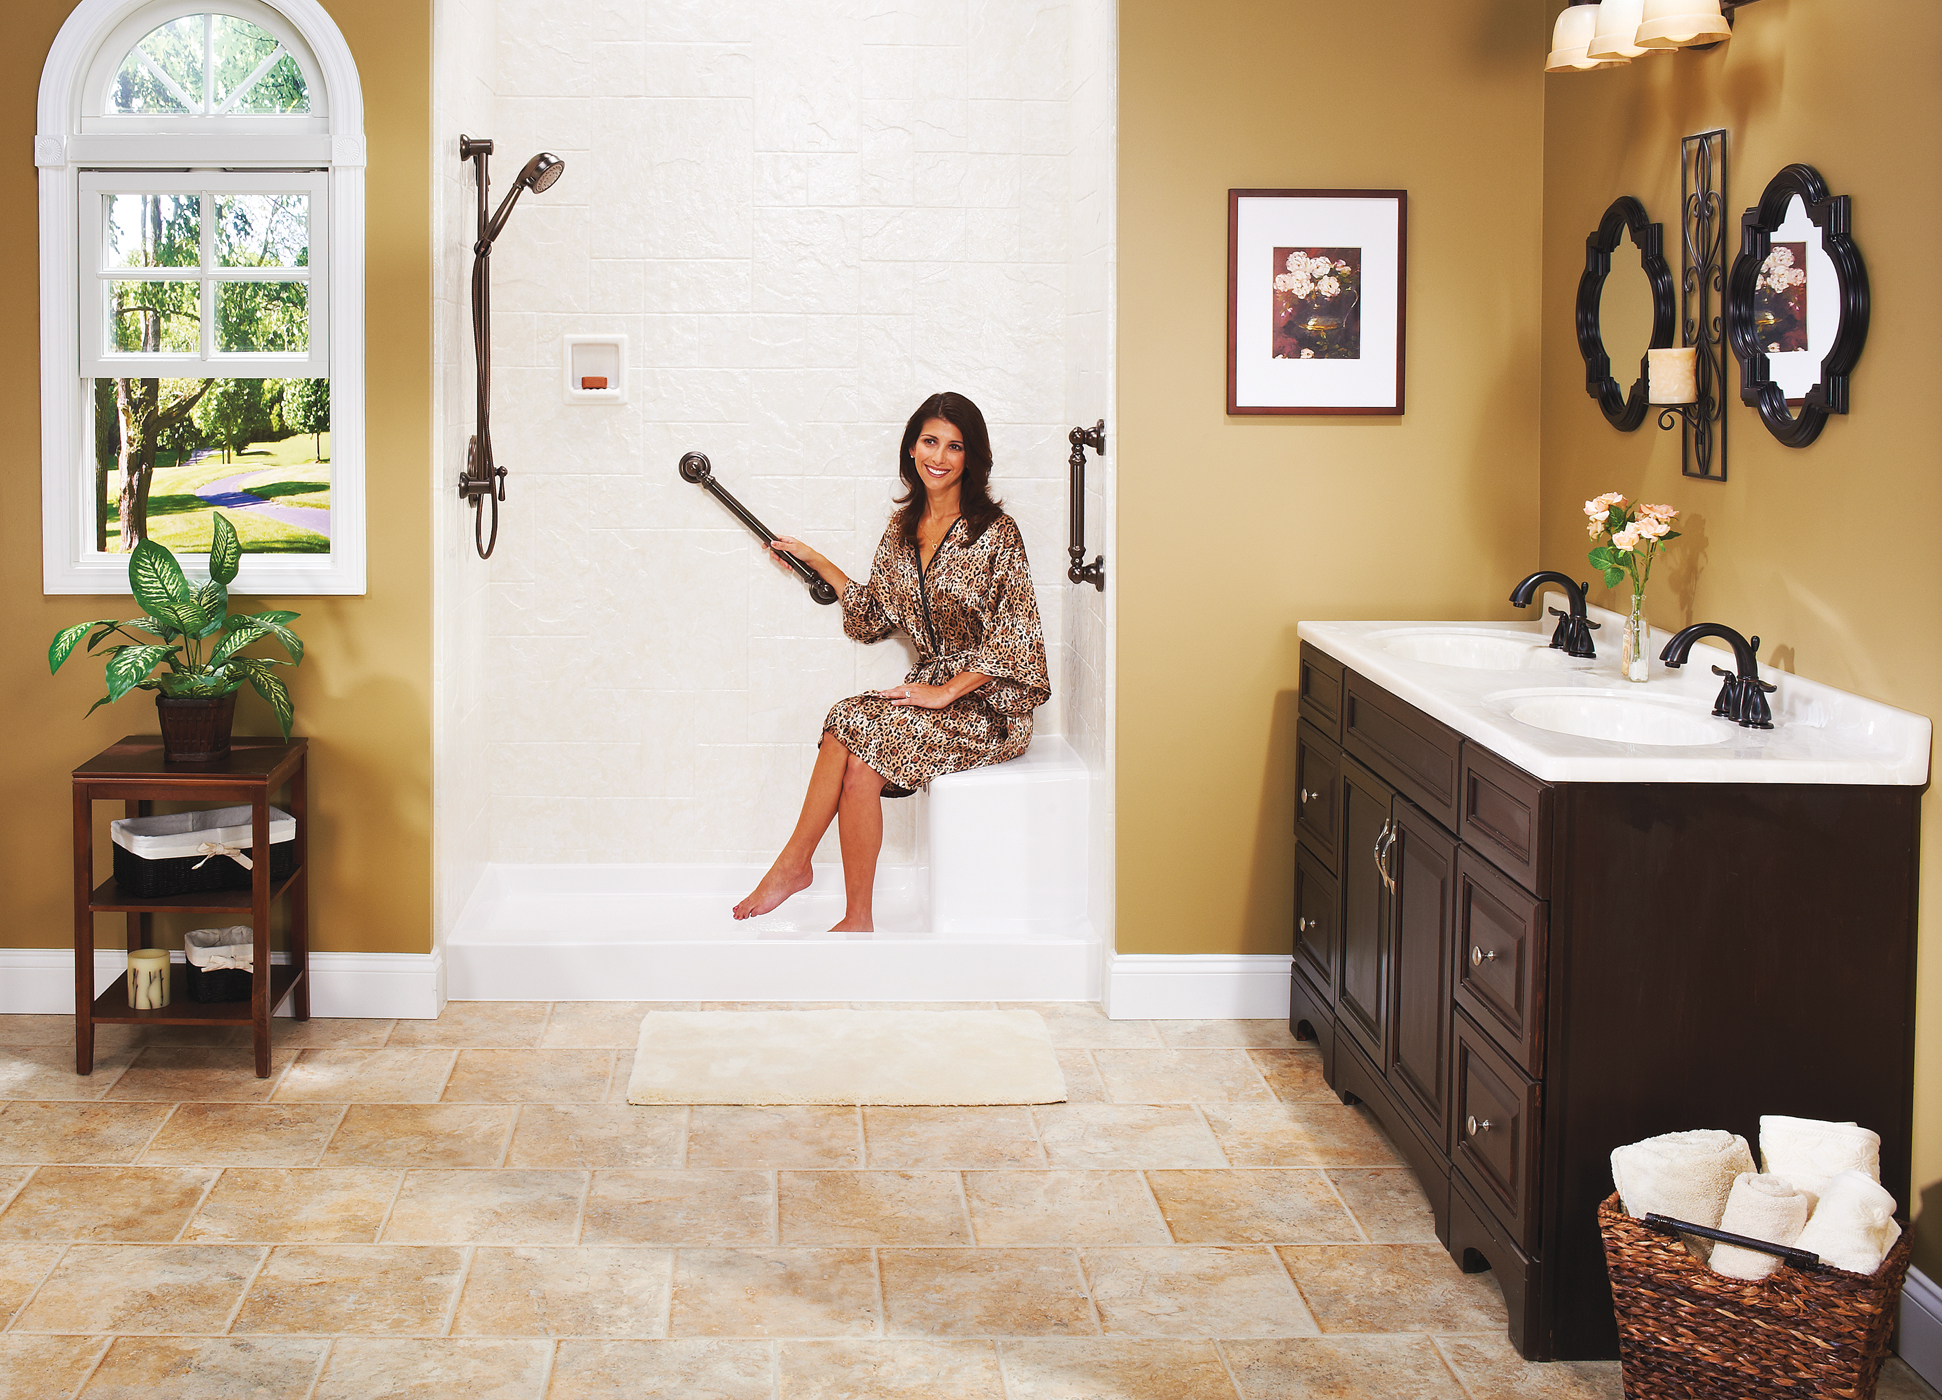 Superieur Bathroom Remodeling That Will Make All Who Enter Say WOW!